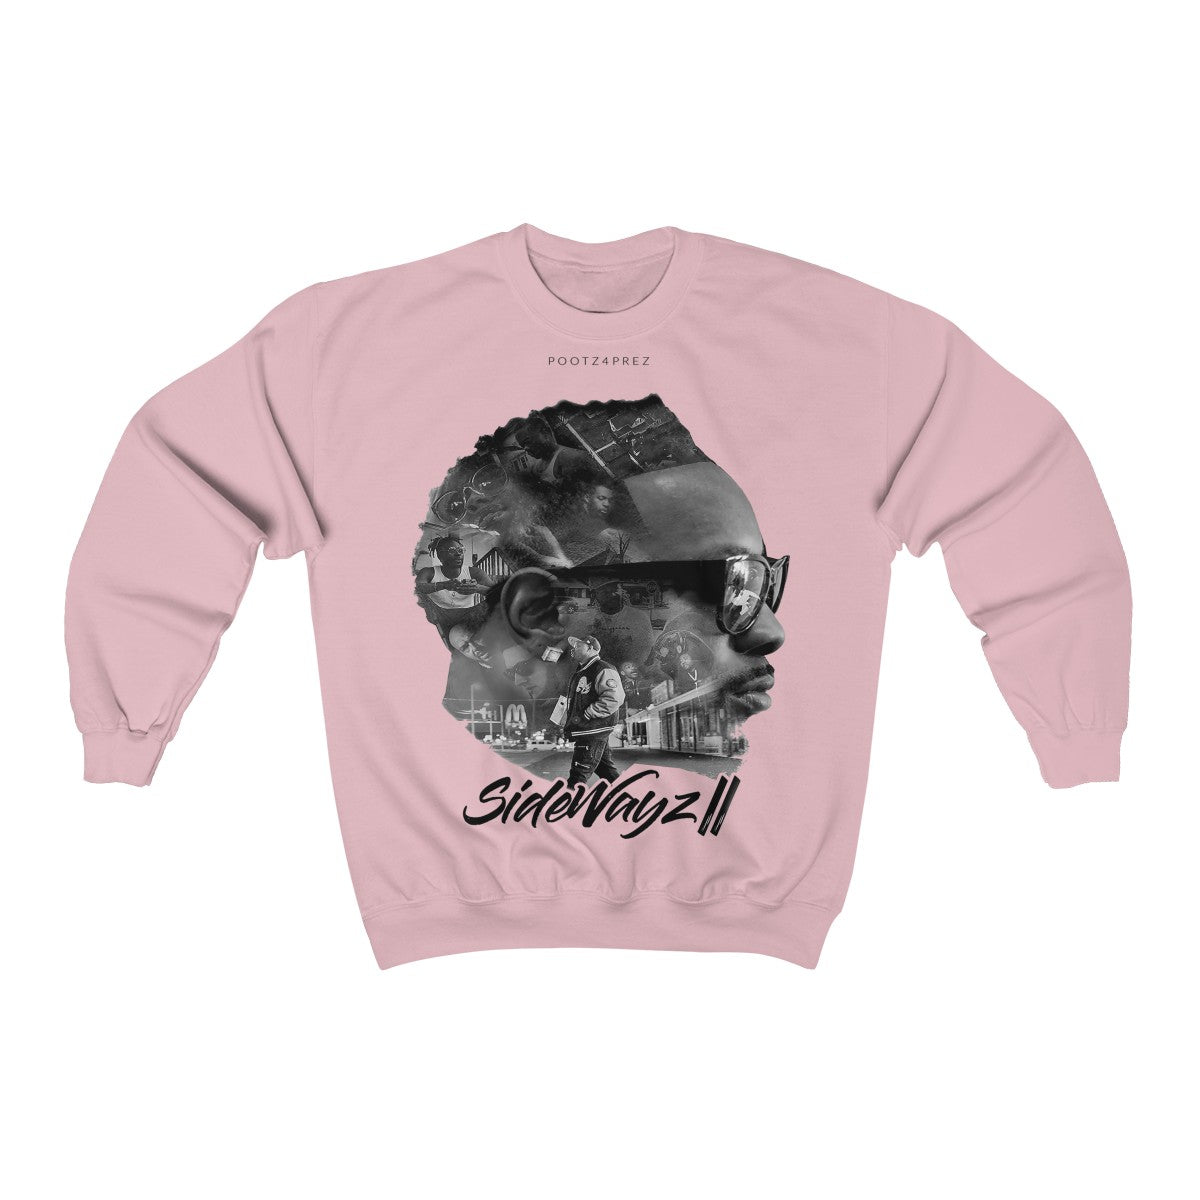 """SideWayz II The Movie"" Crewneck Sweatshirt"